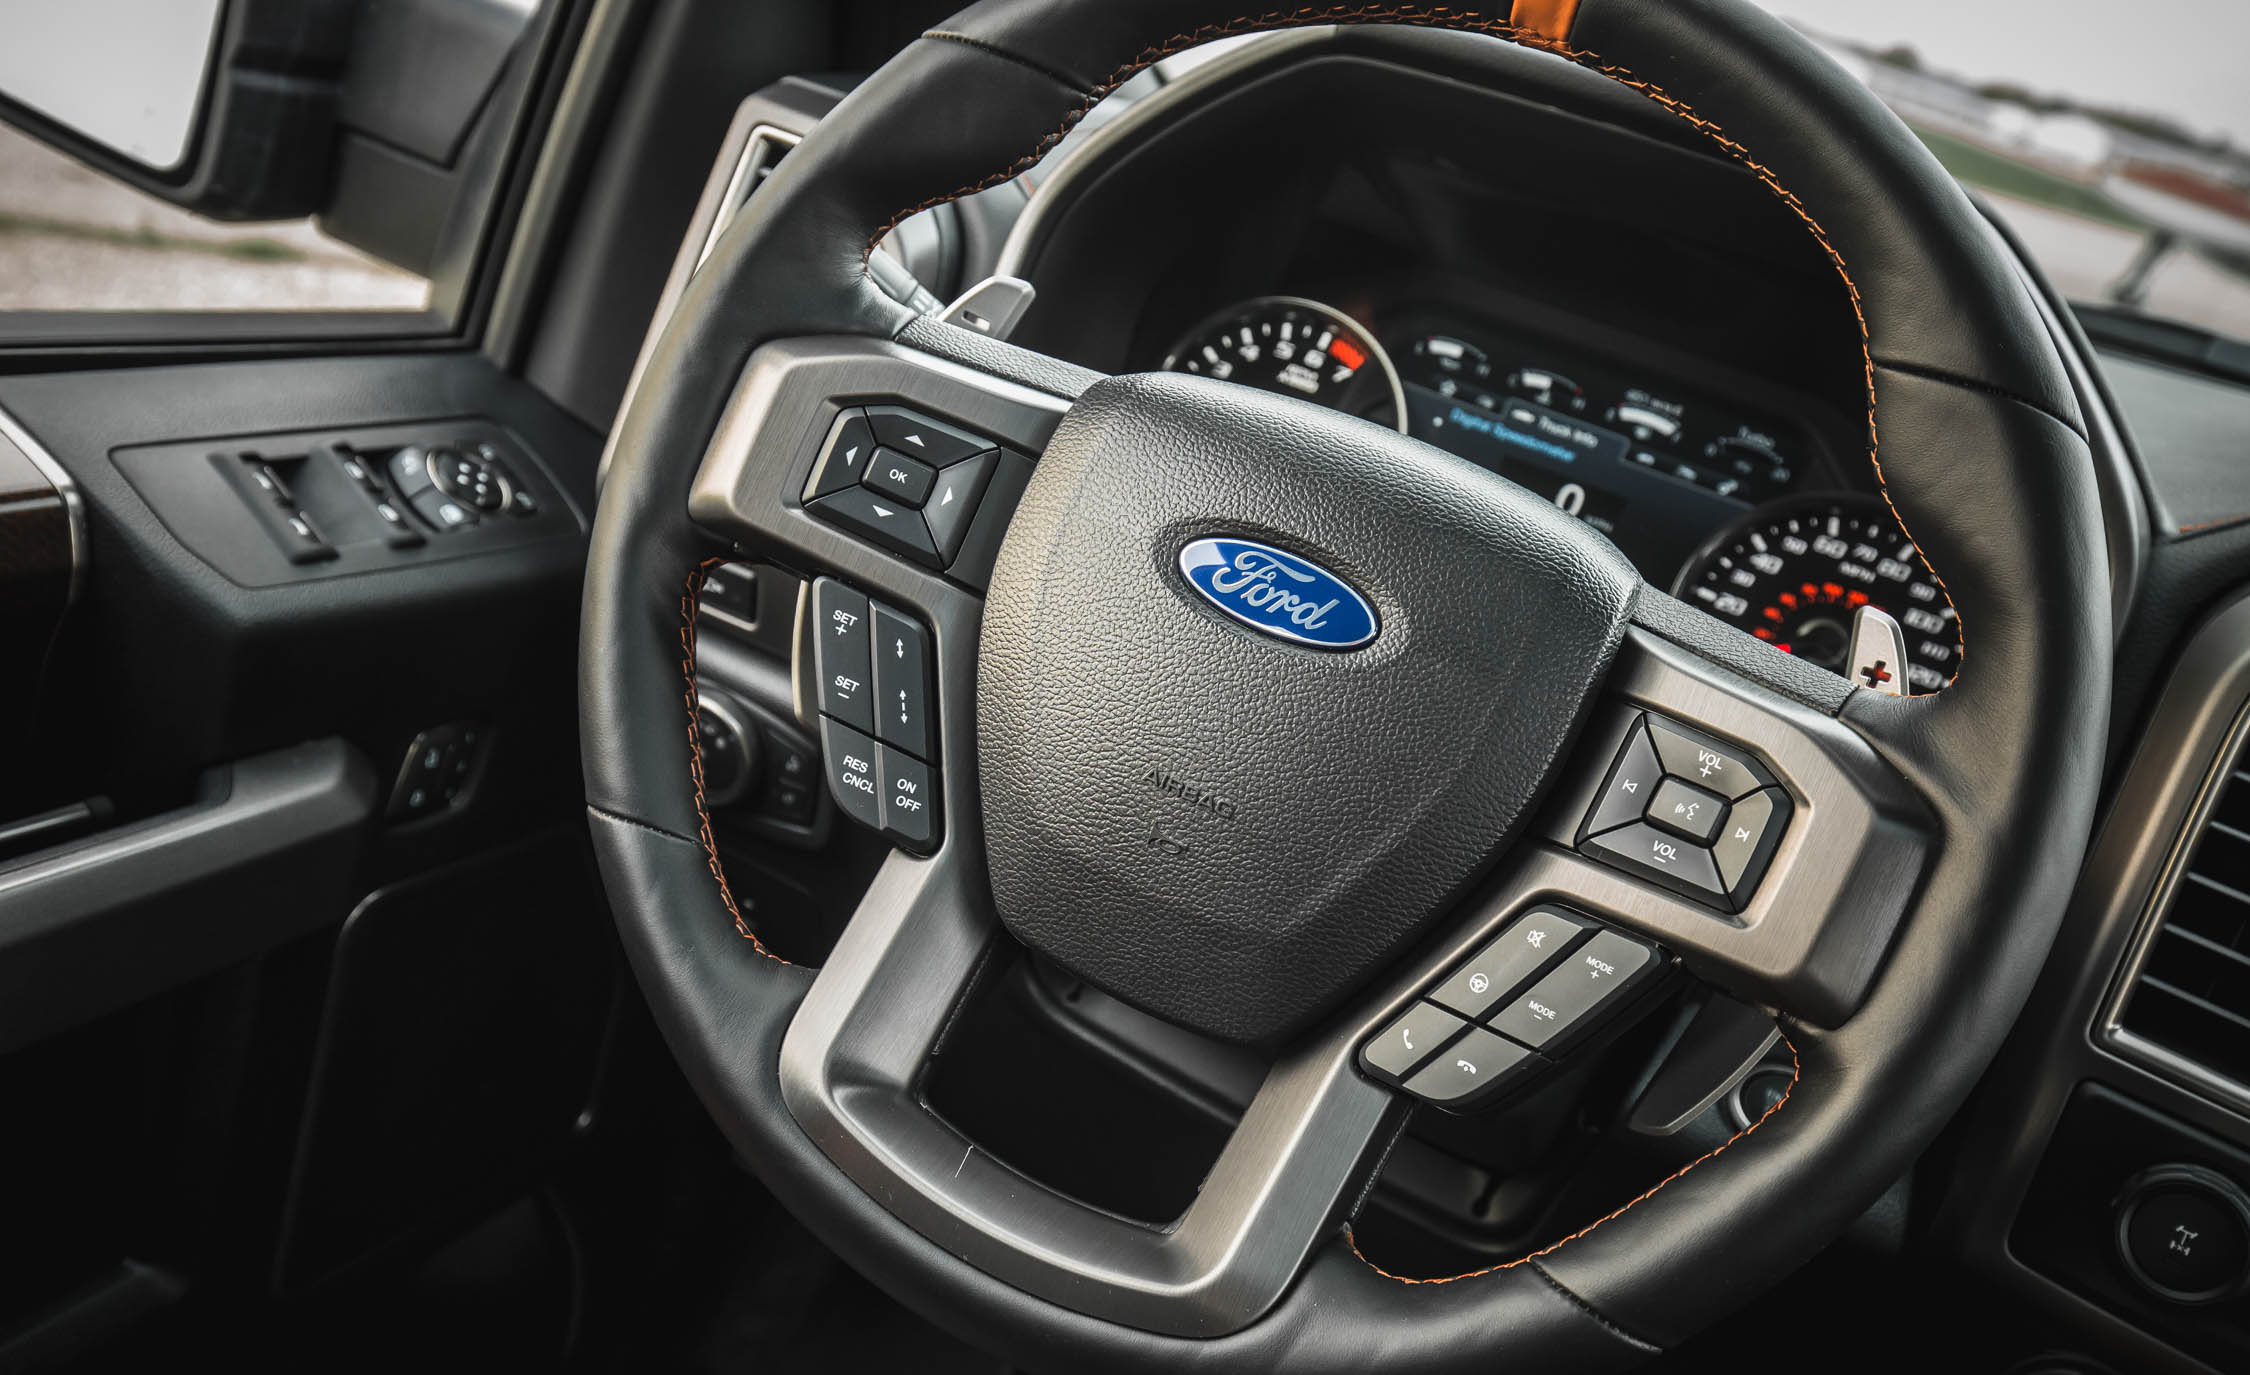 2017 Ford F 150 Raptor SuperCrew Interior View Steering Wheel (Photo 41 of 47)